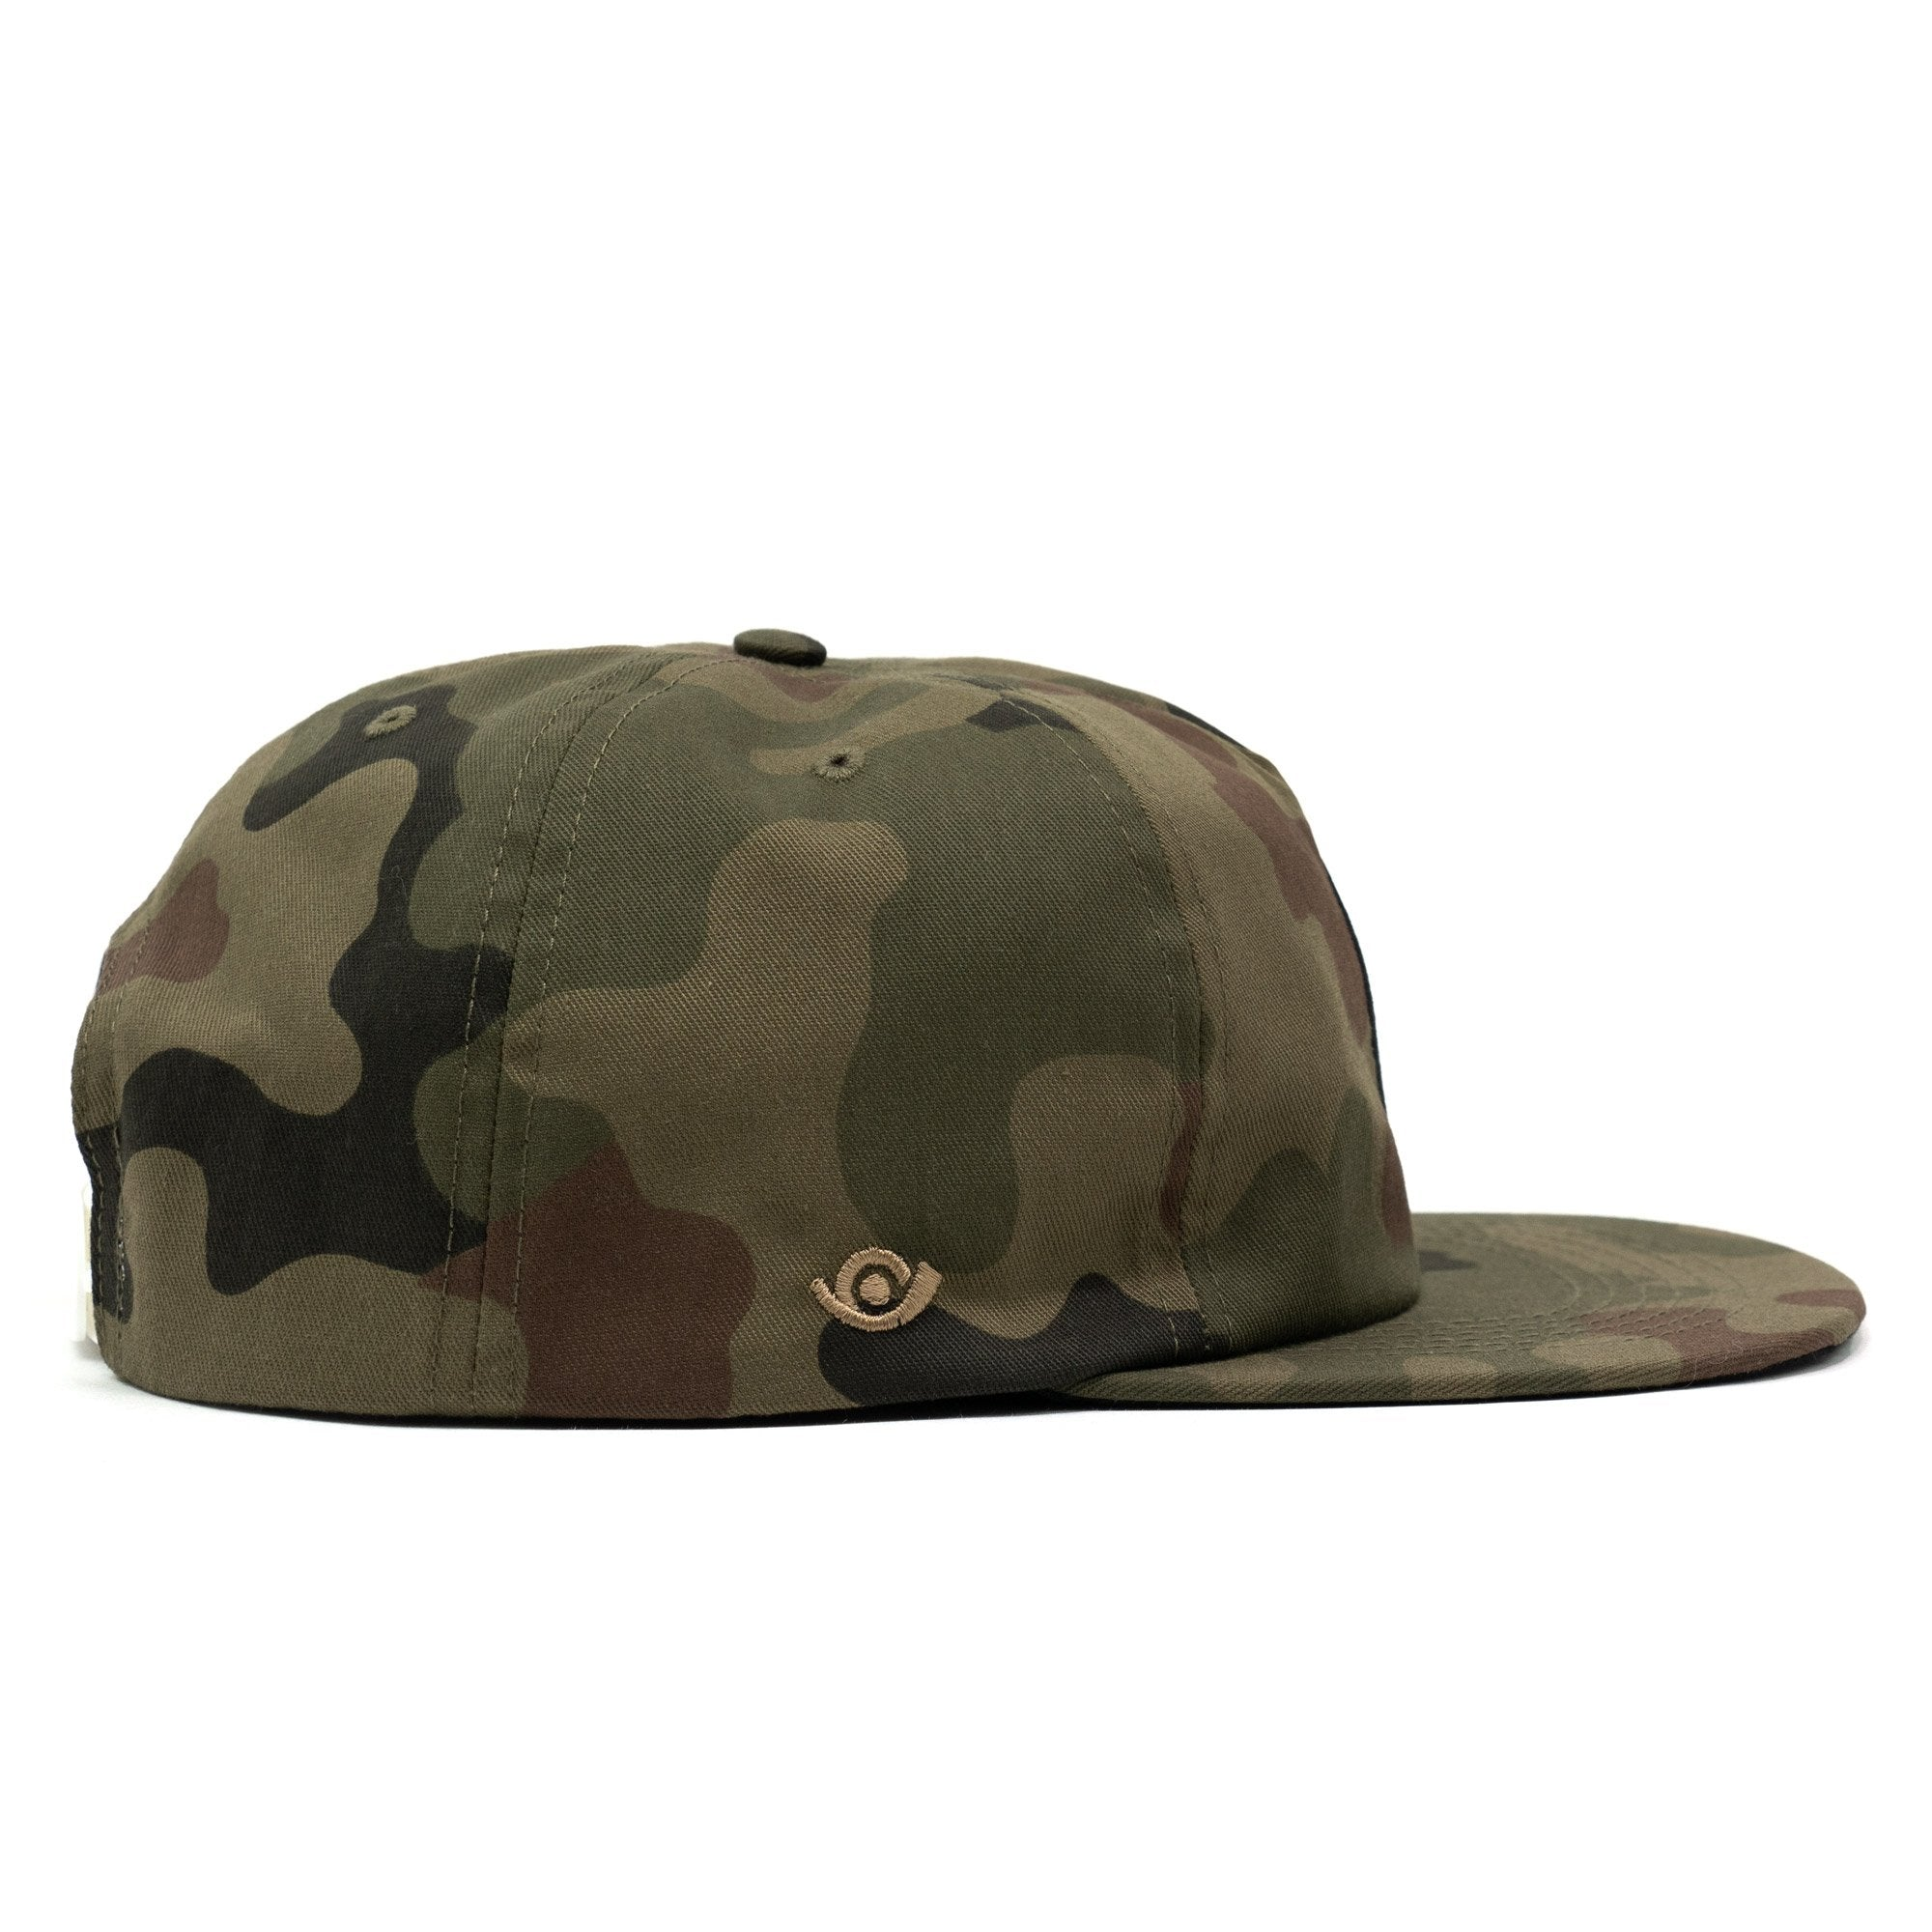 Deconstructed Hydrant Snapback Cap Camouflage